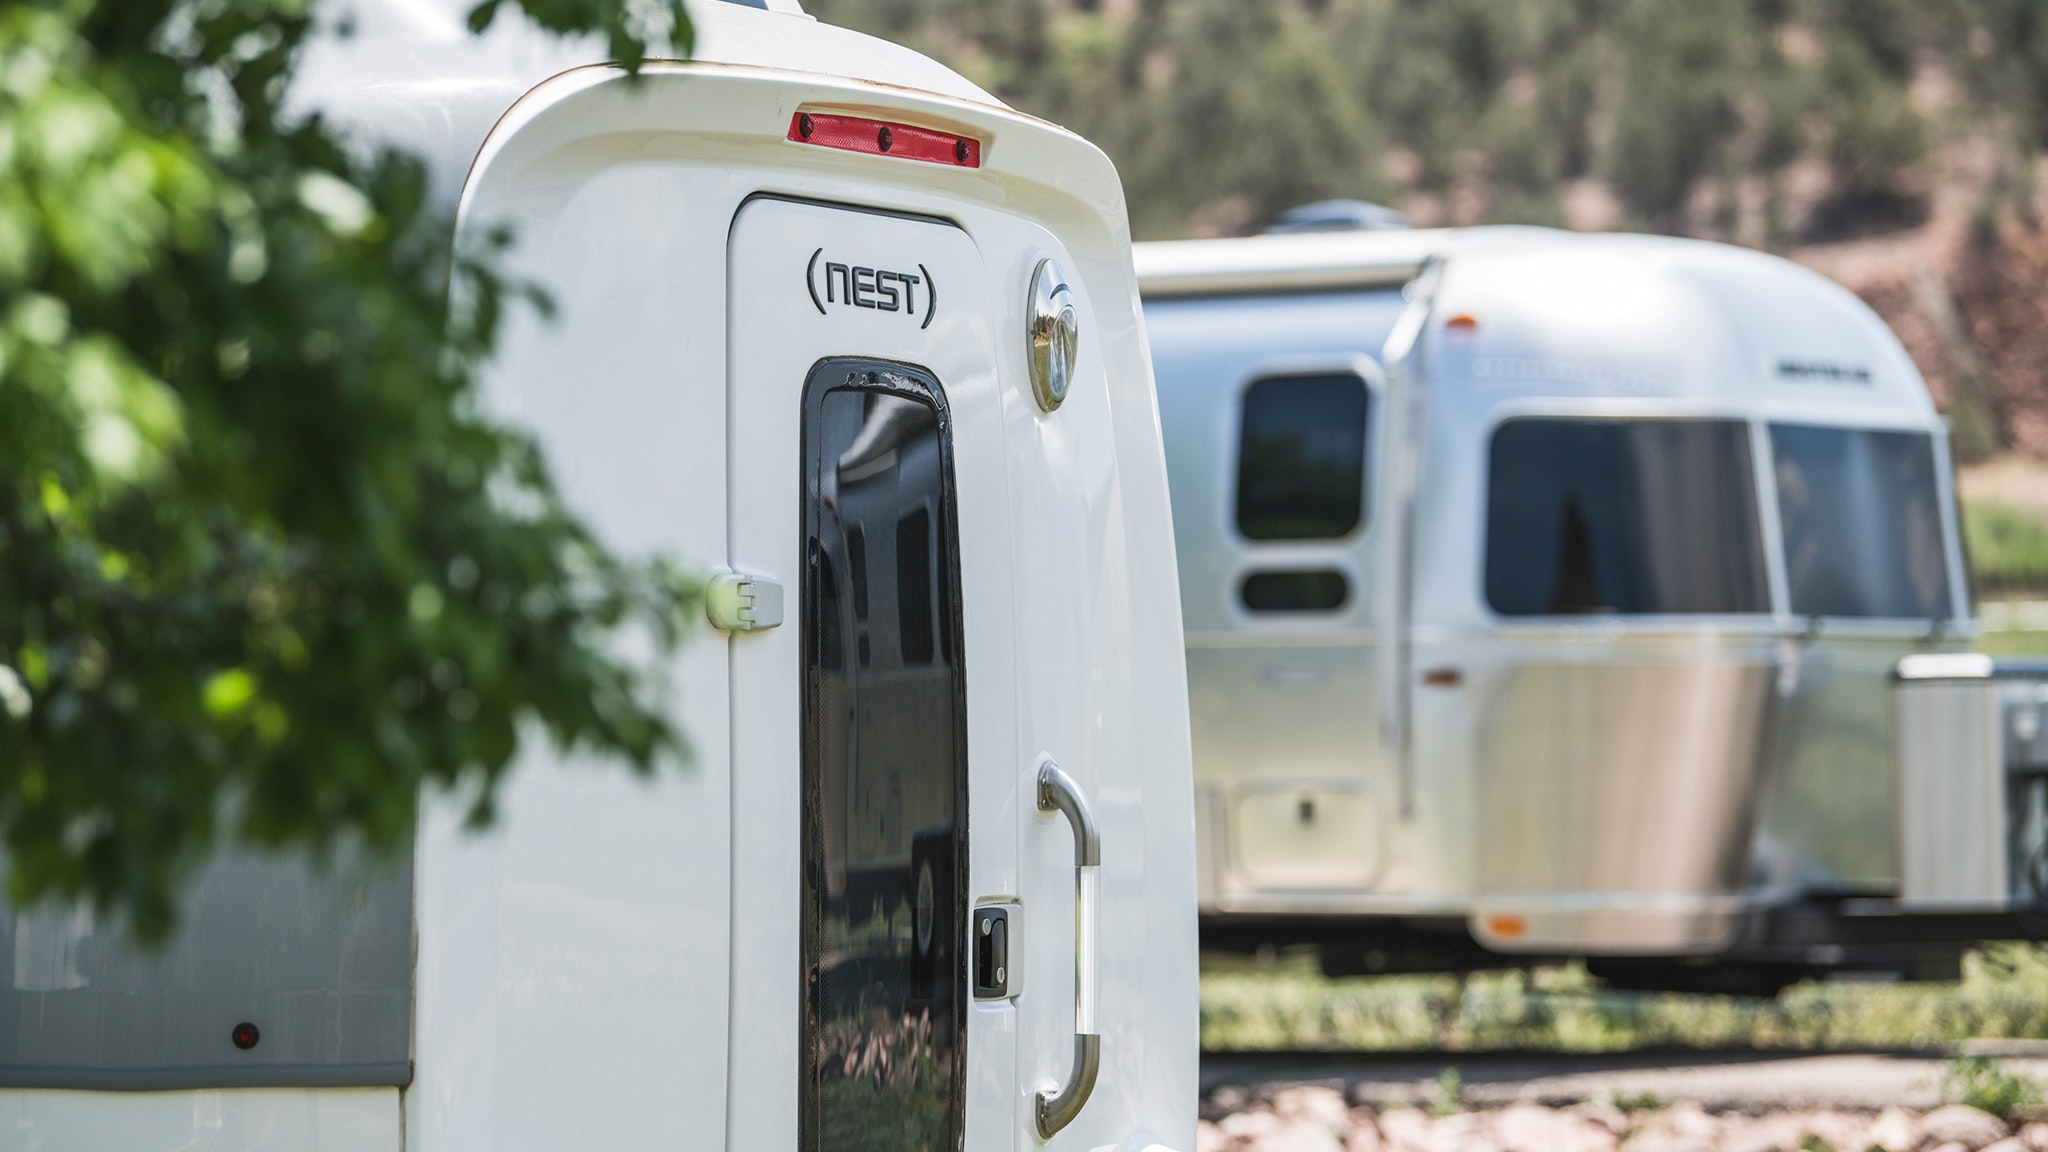 Airstream Nest and Travel Trailer